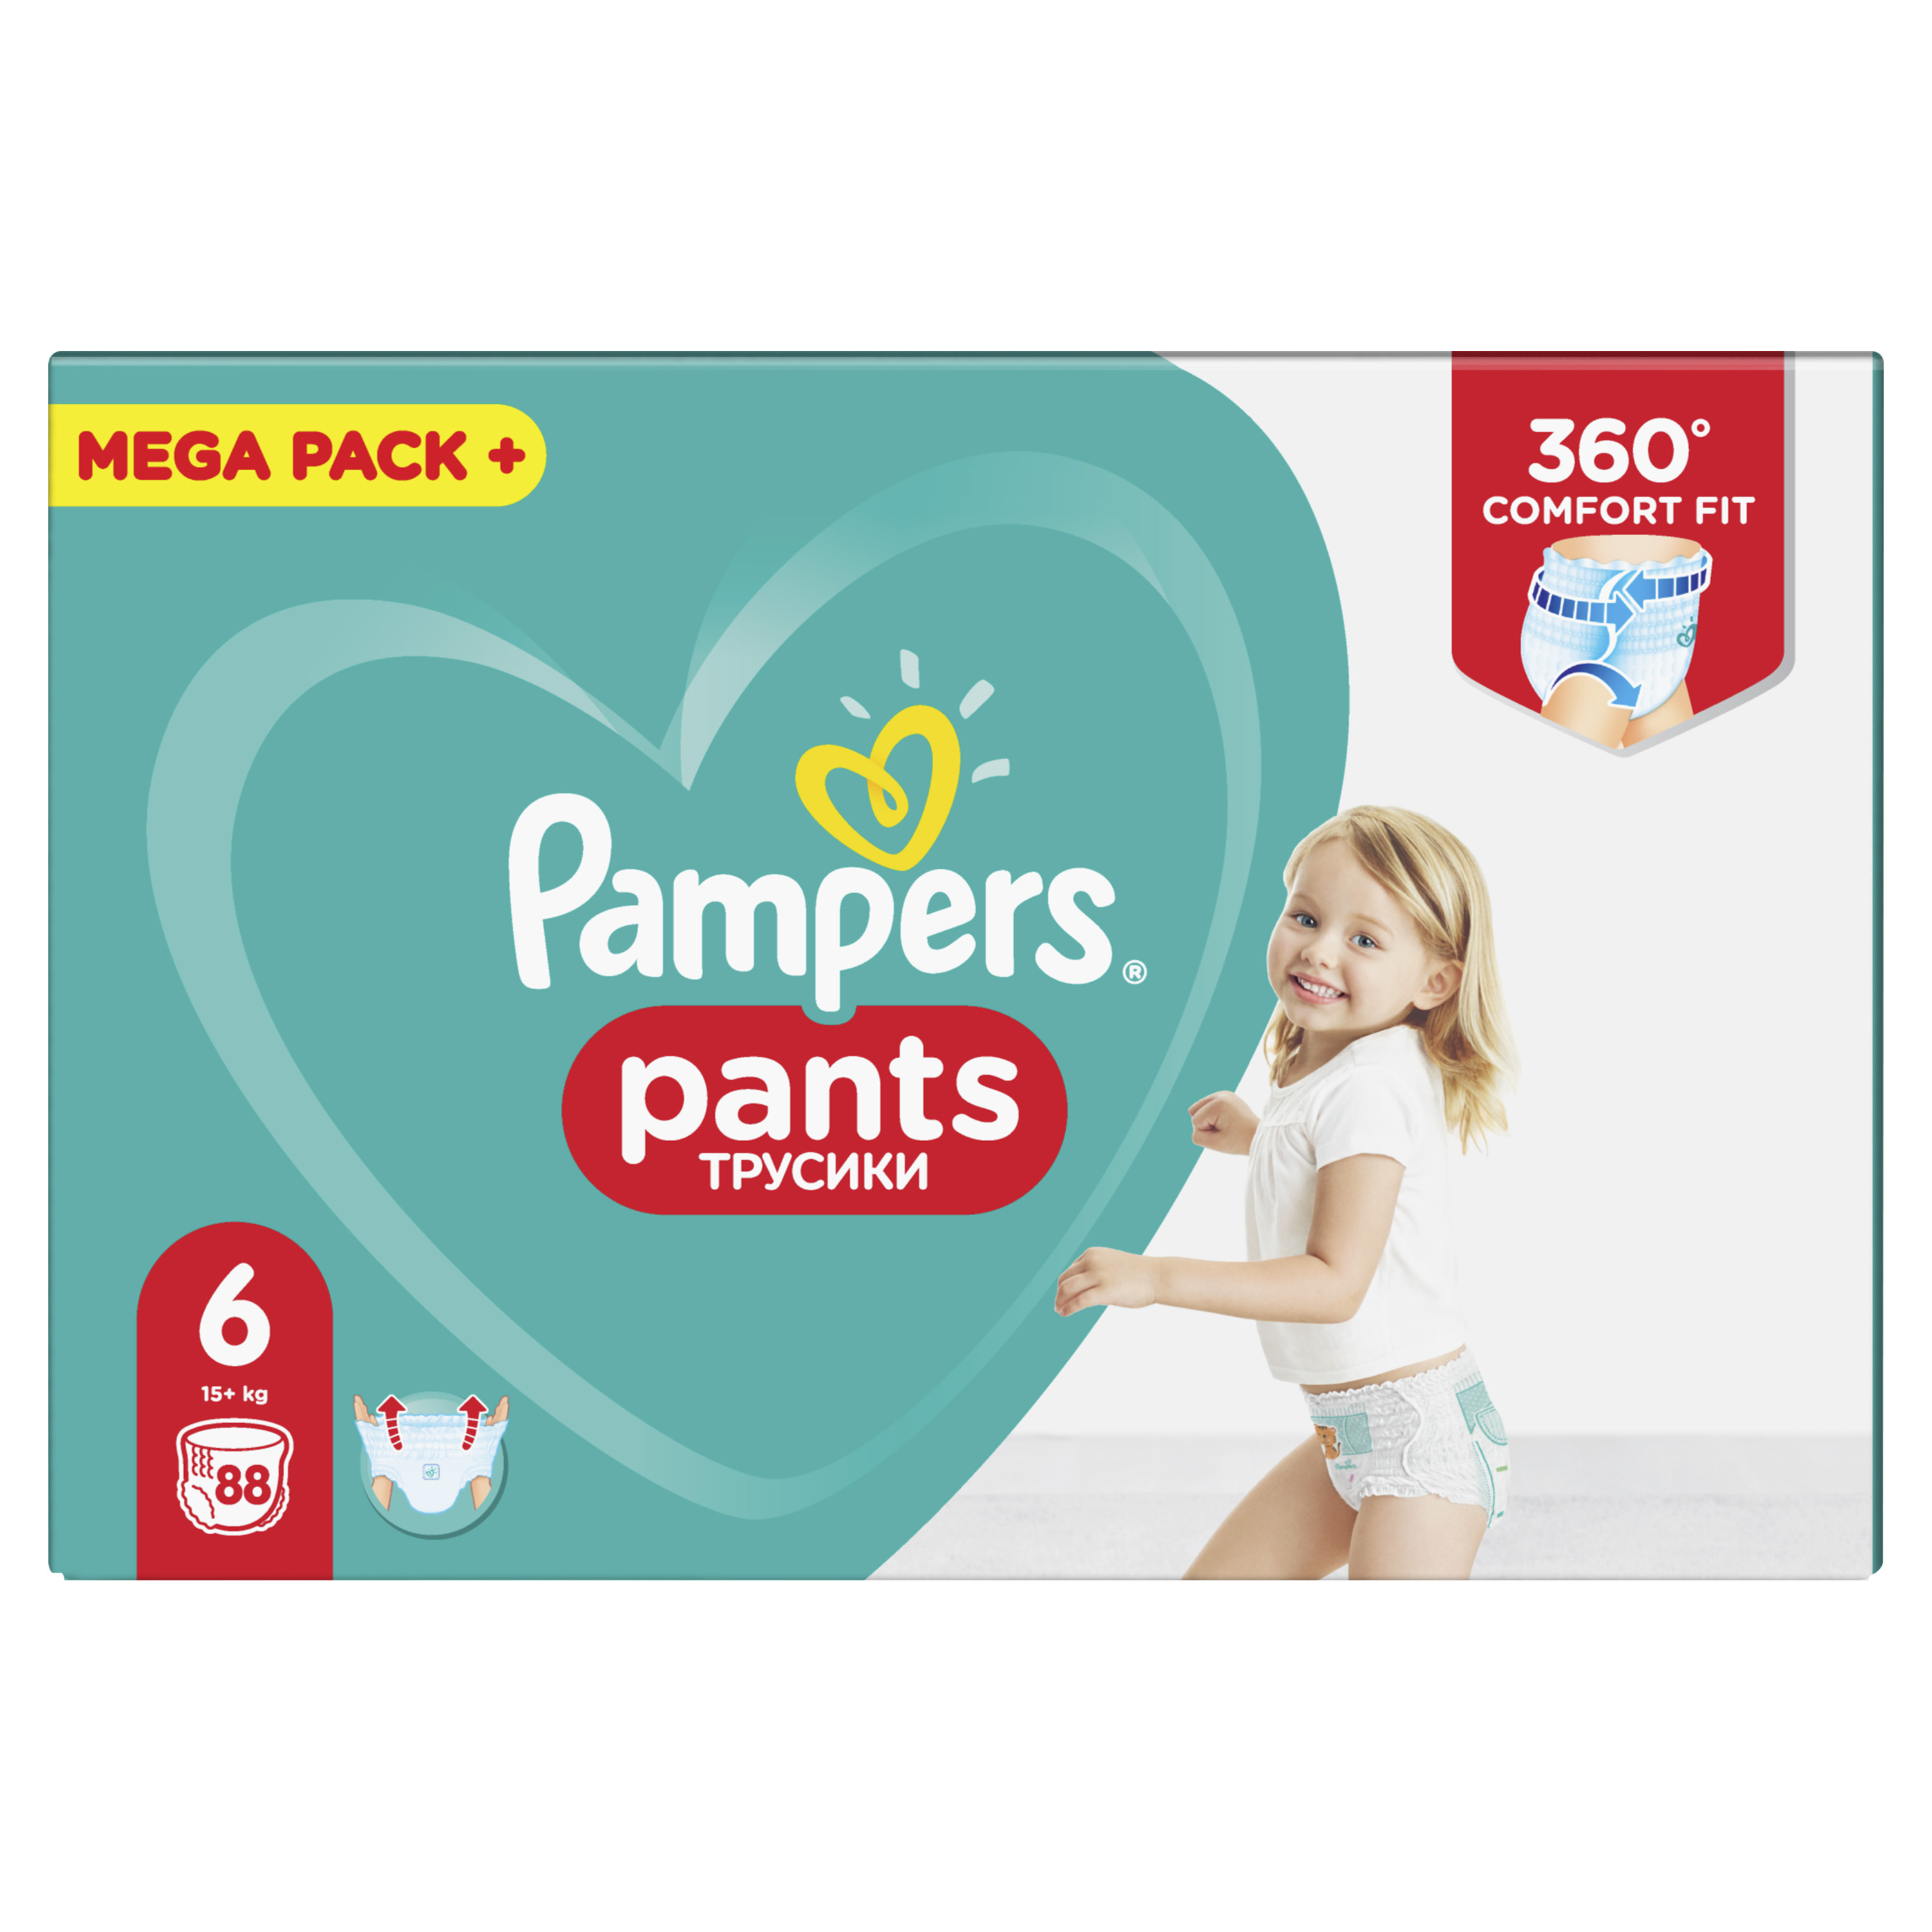 04015400697558_81715531_PRODUCTIMAGE_INPACKAGE_FRONT_CENTER_1_Pampers.jpg